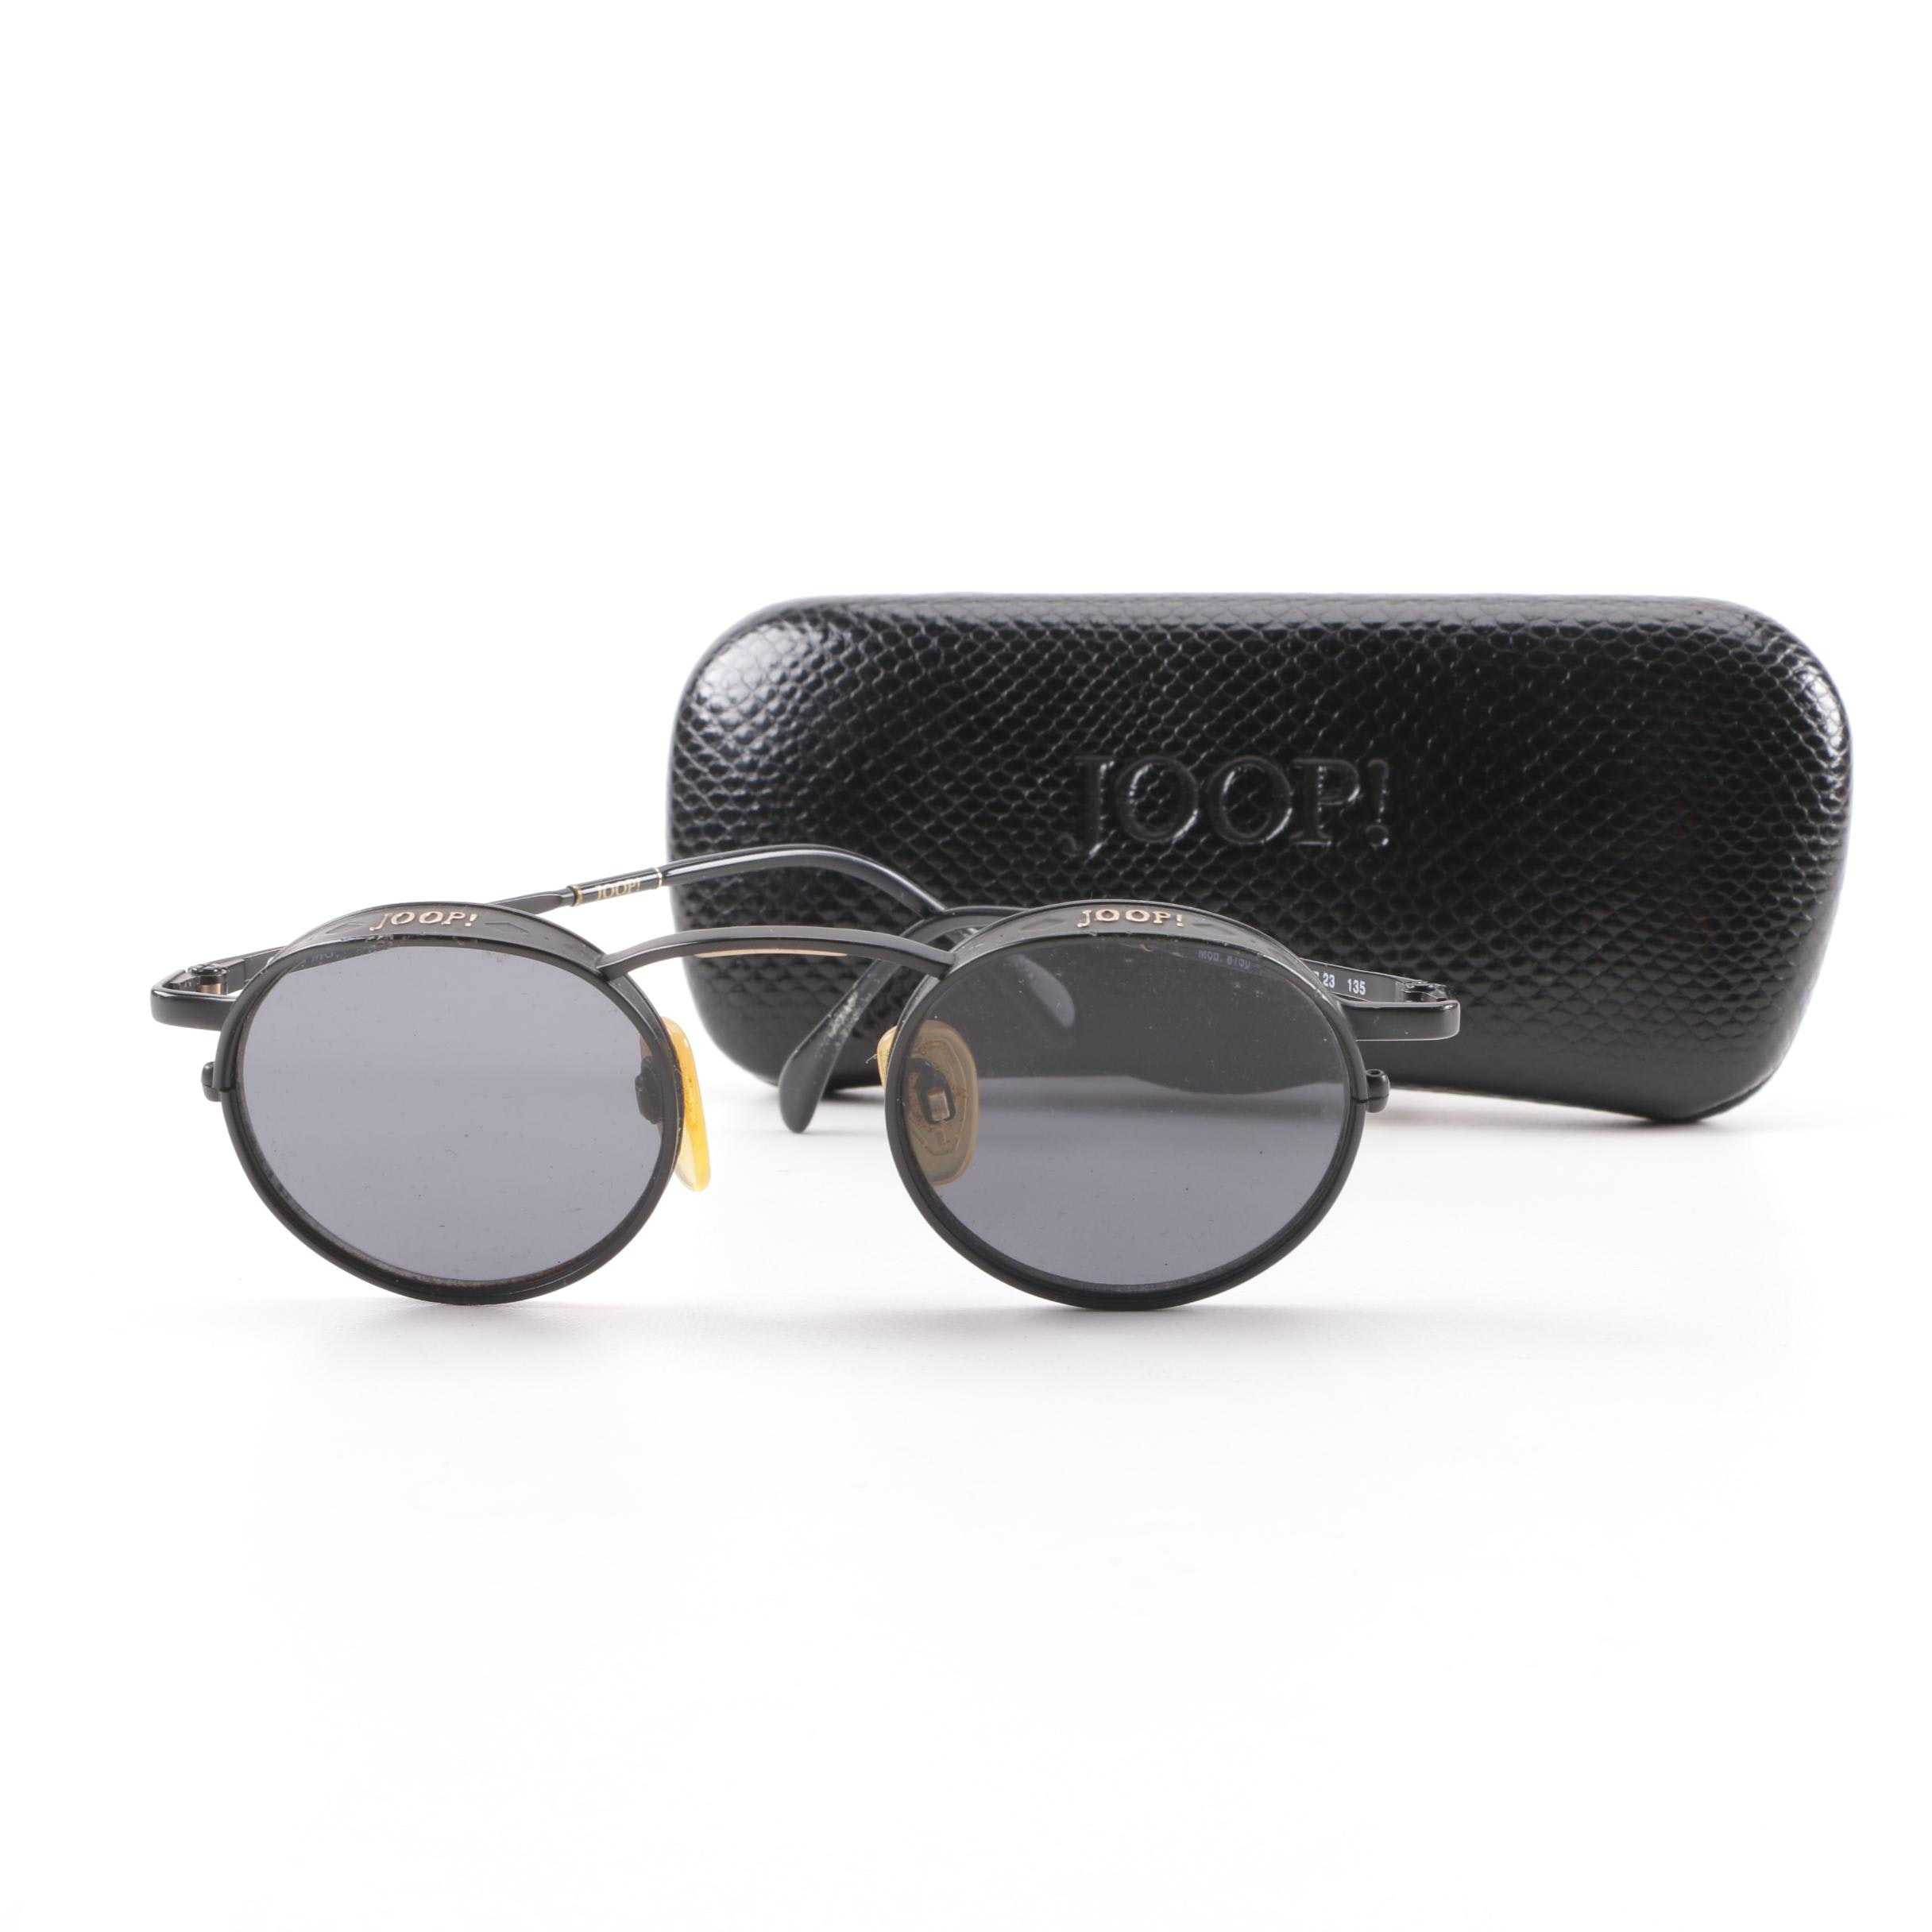 Joop! 8750 Sunglasses with Case